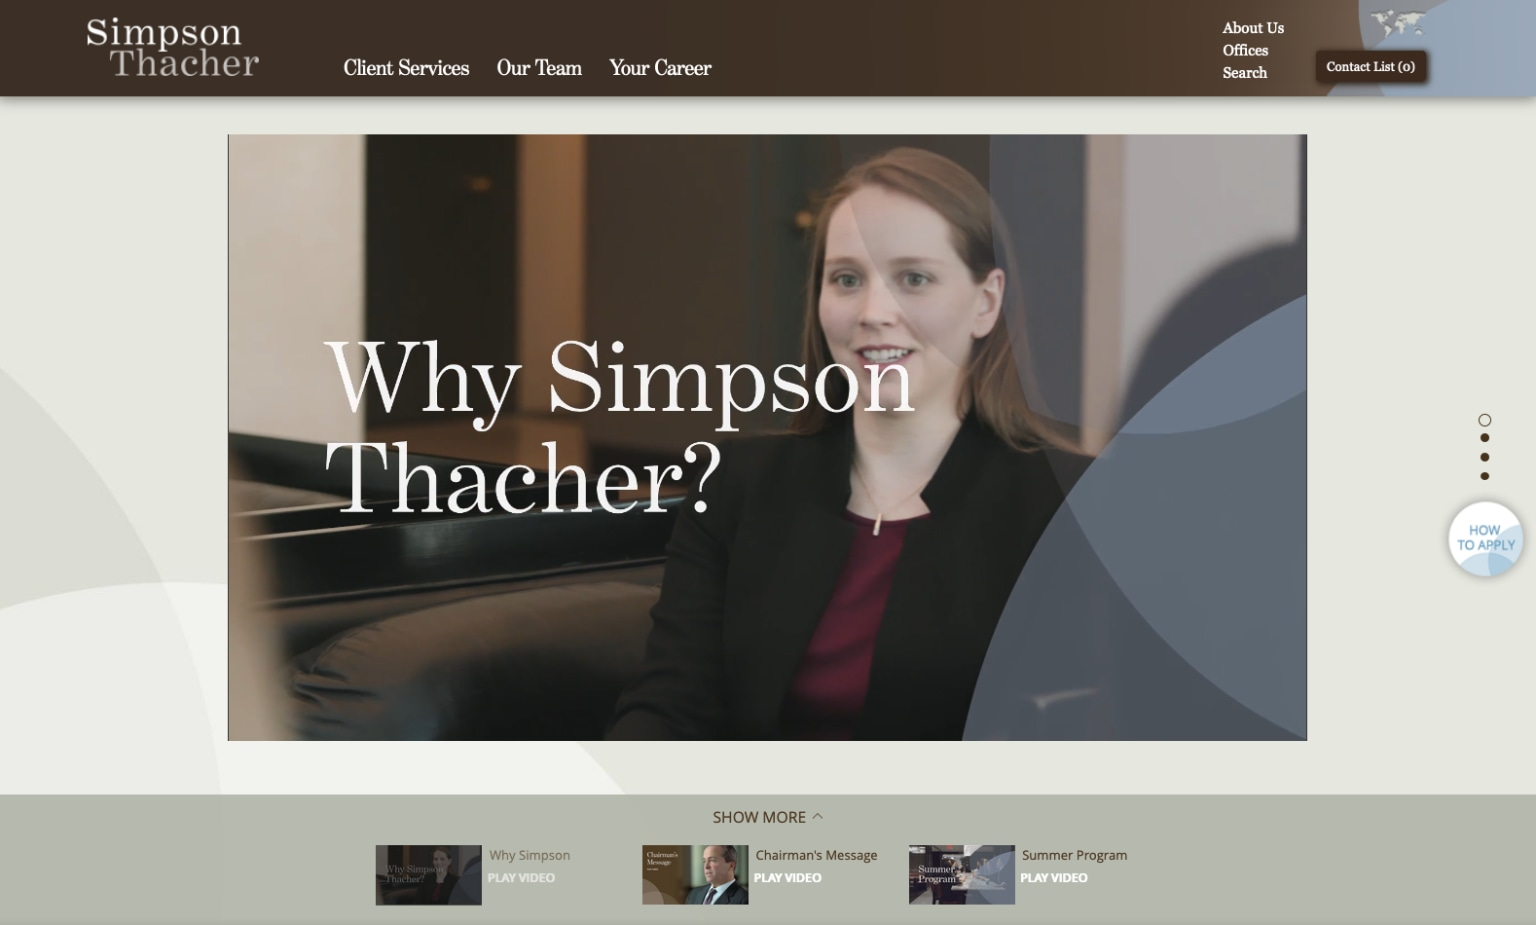 Simpson Thacher Lawfirm